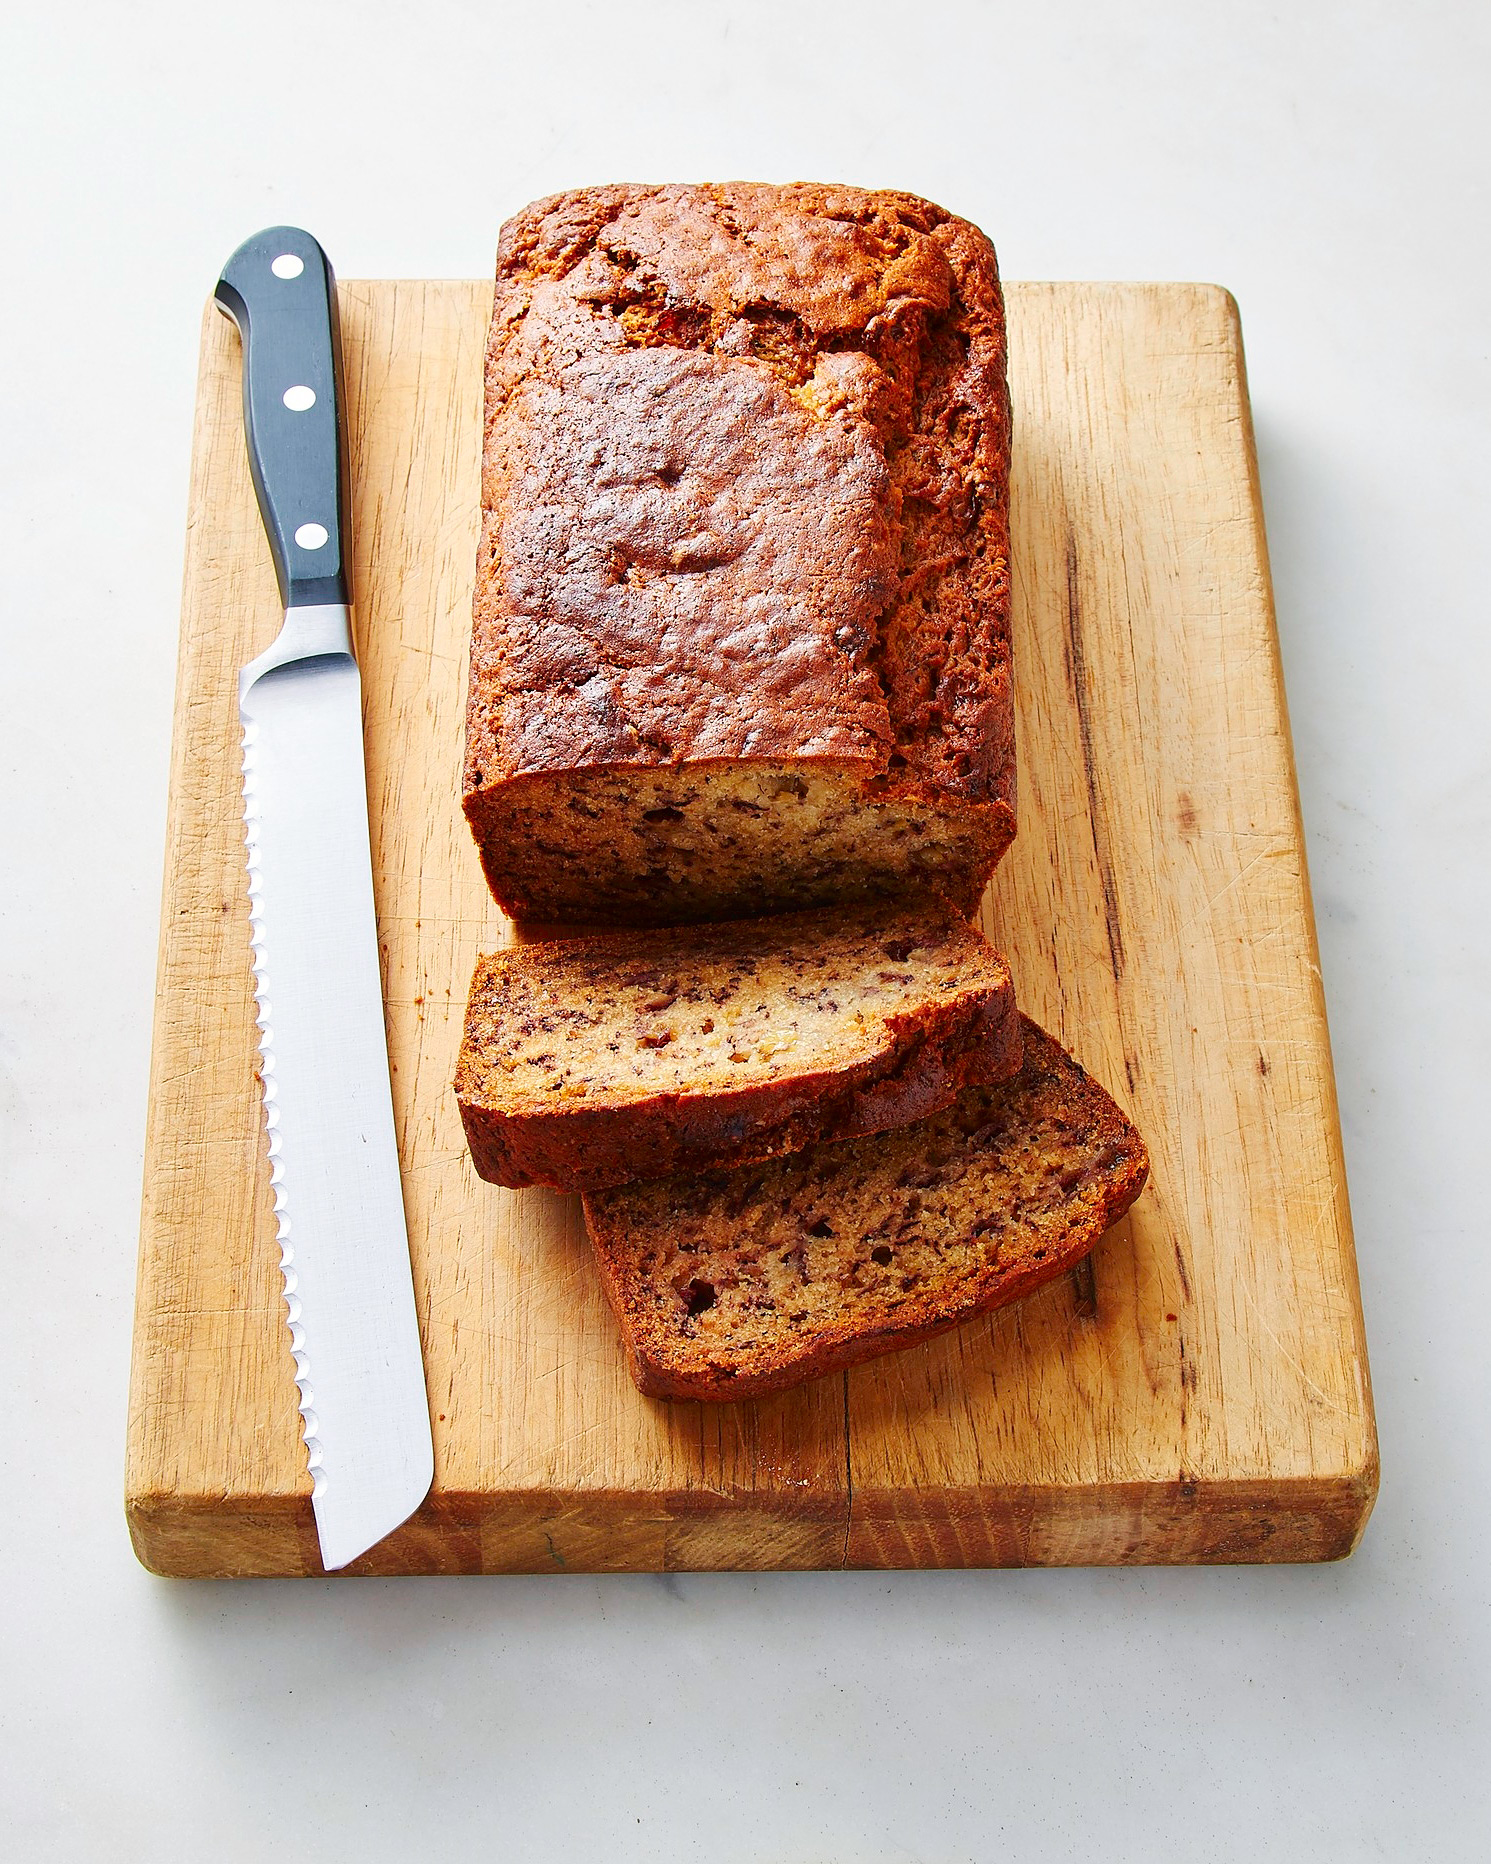 banana-bread-102882418.jpg